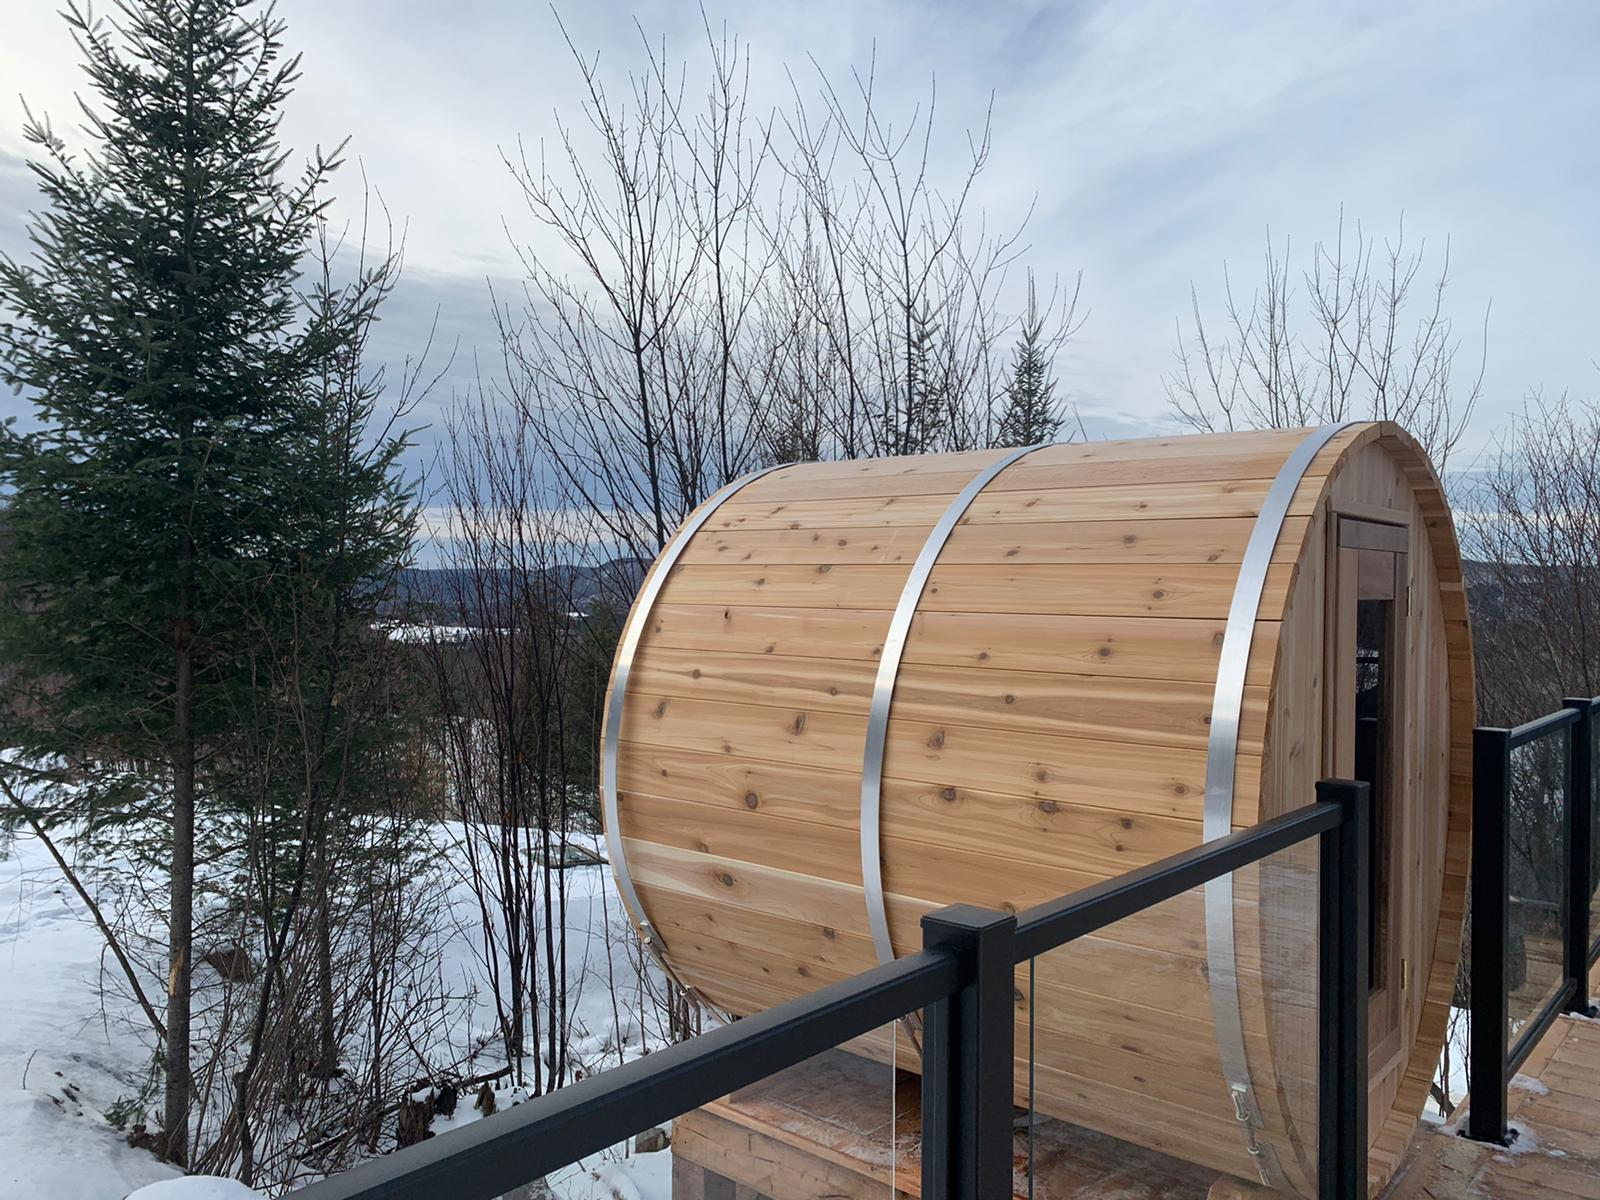 hotel in Tremblant, Bel Air dome rentals